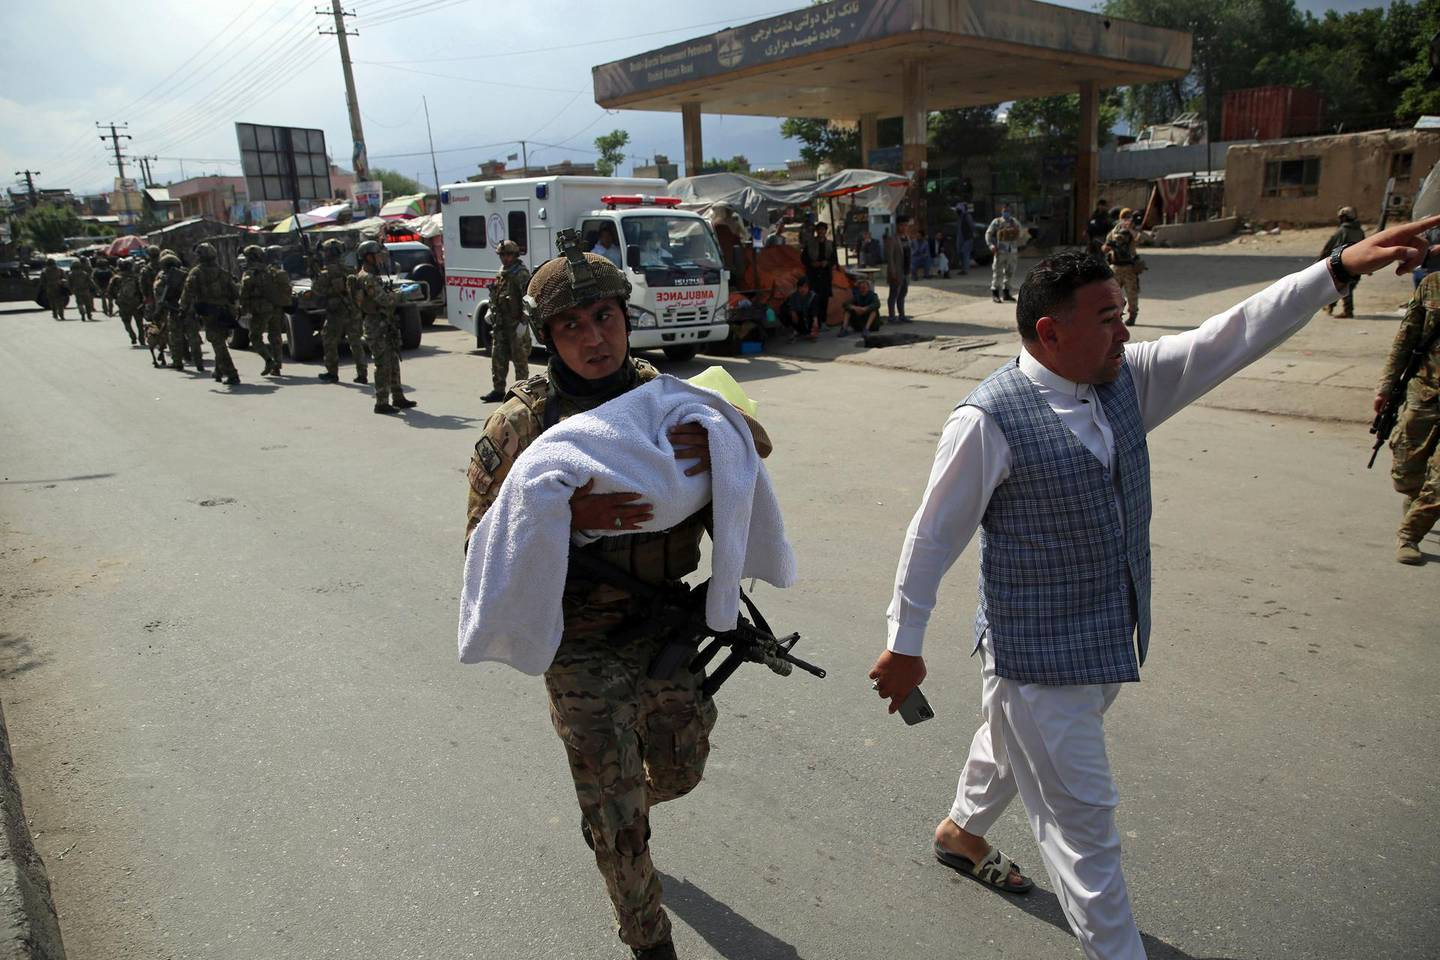 An Afghan security officer carries a baby after gunmen attacked a maternity hospital, in Kabul, Afghanistan, Tuesday, May 12, 2020. Gunmen stormed the hospital in the western part of Kabul on Tuesday, setting off a shootout with the police and killing several people. (AP Photo/Rahmat Gul)